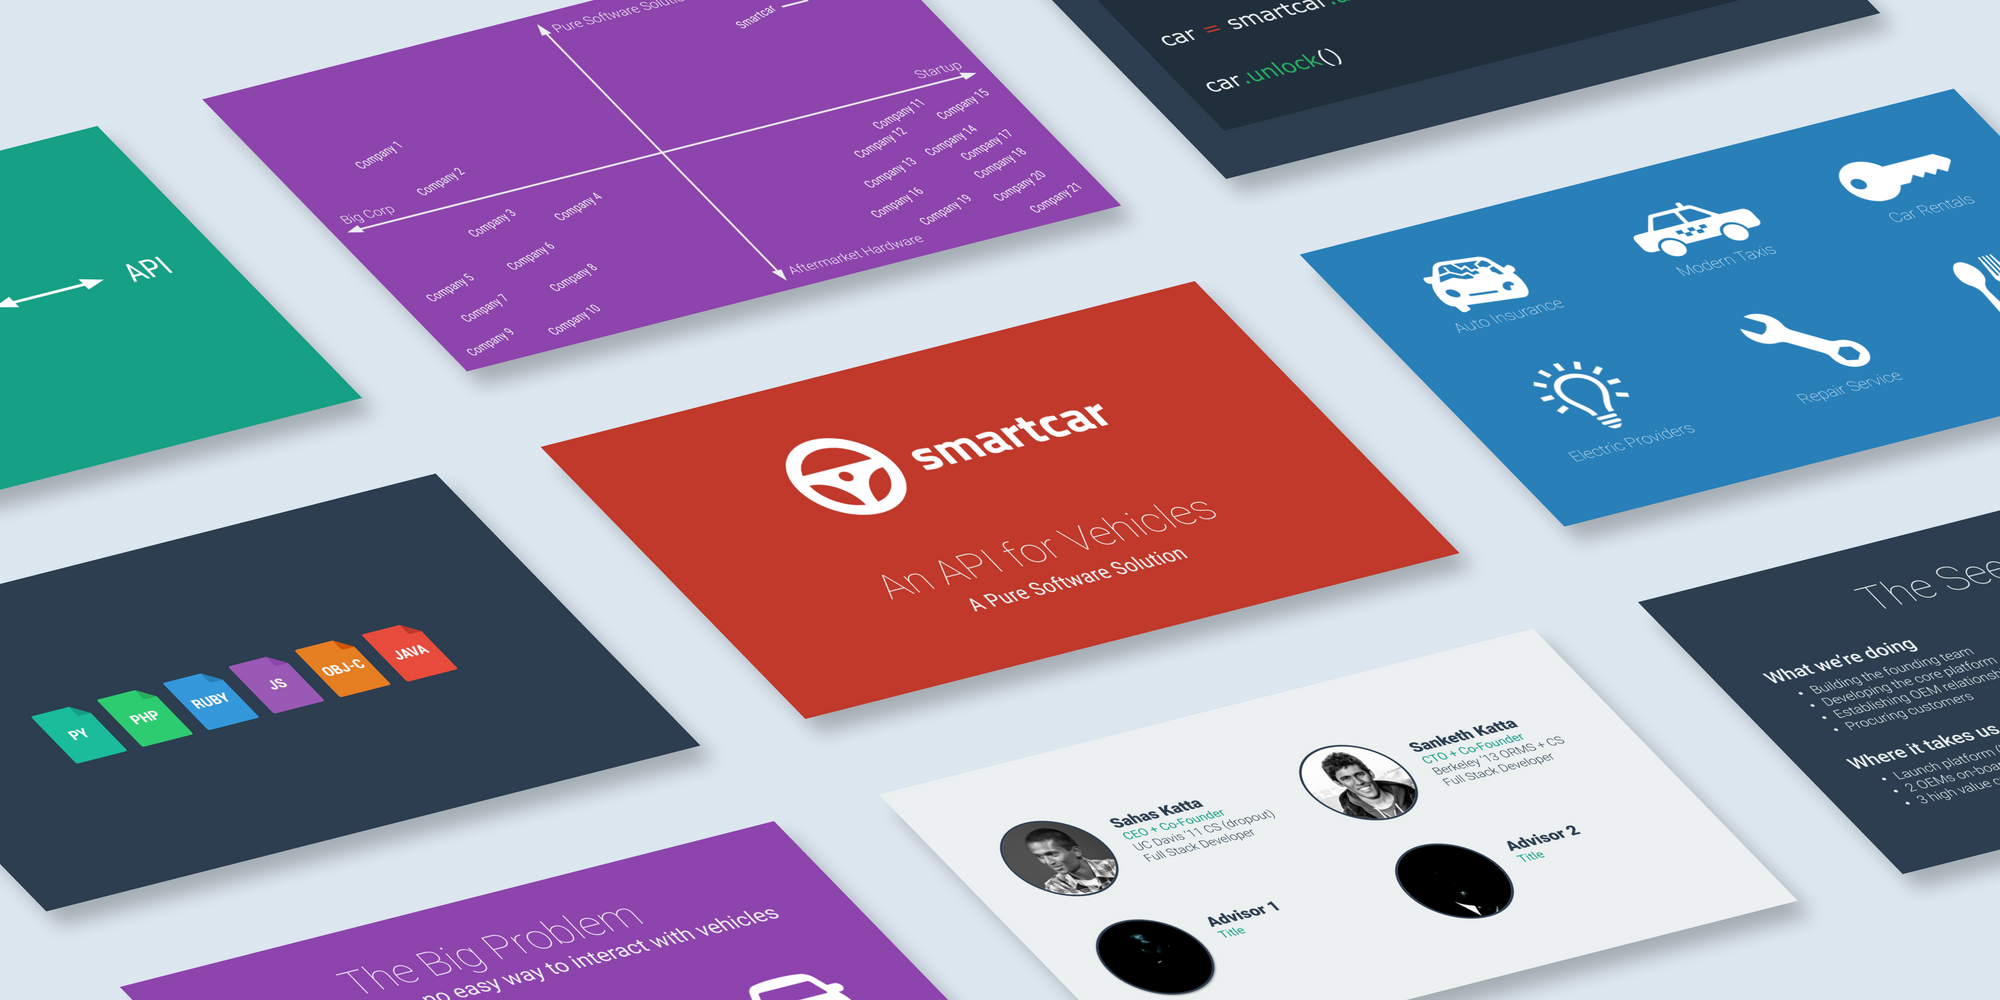 The pitch deck that got Smartcar $2 million in seed funding from Andreessen Horowitz